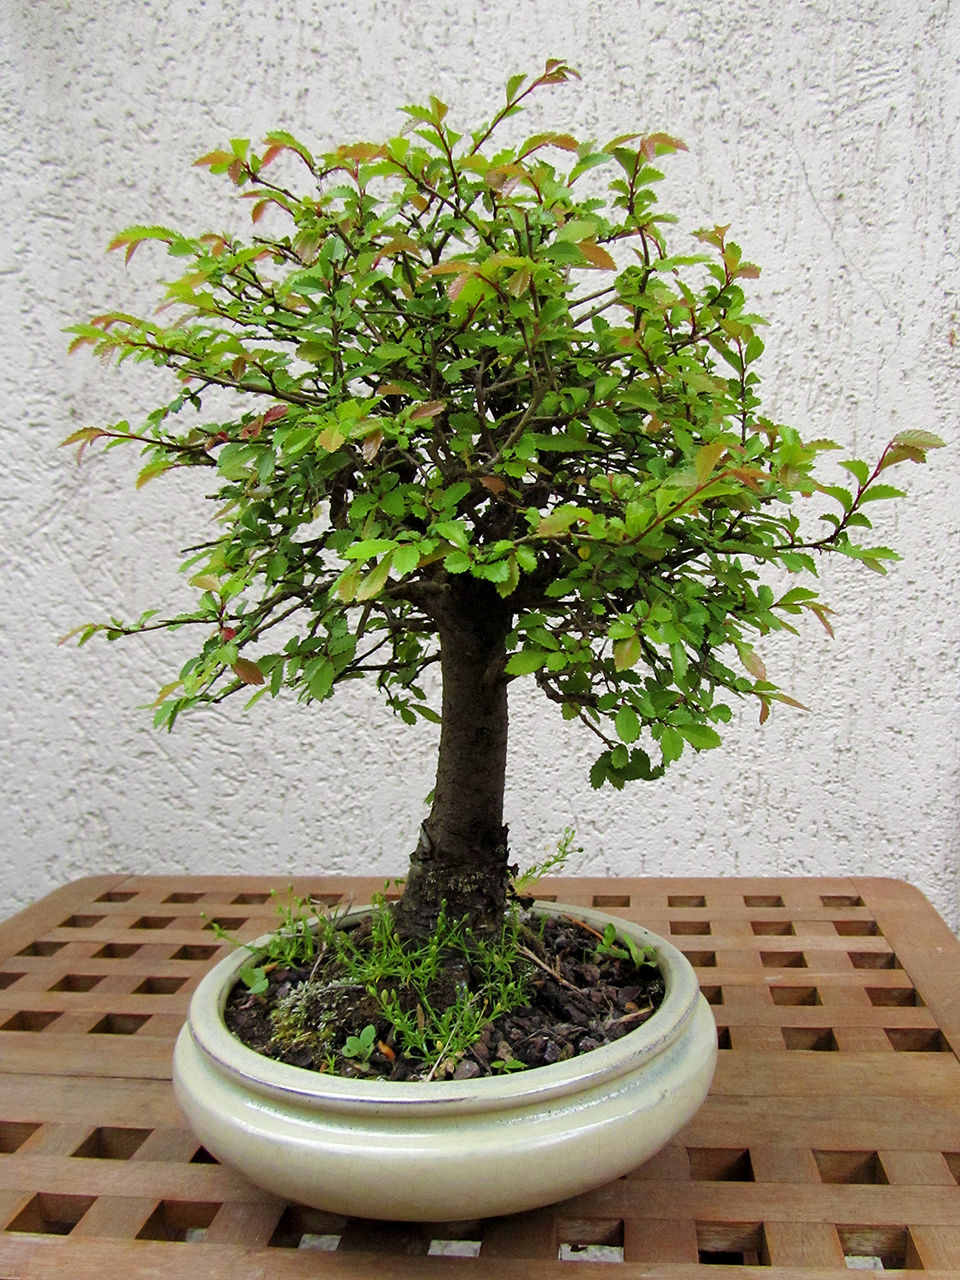 Bonsa cr ation l 39 album photos collection des membres - Orme de chine bonsai ...